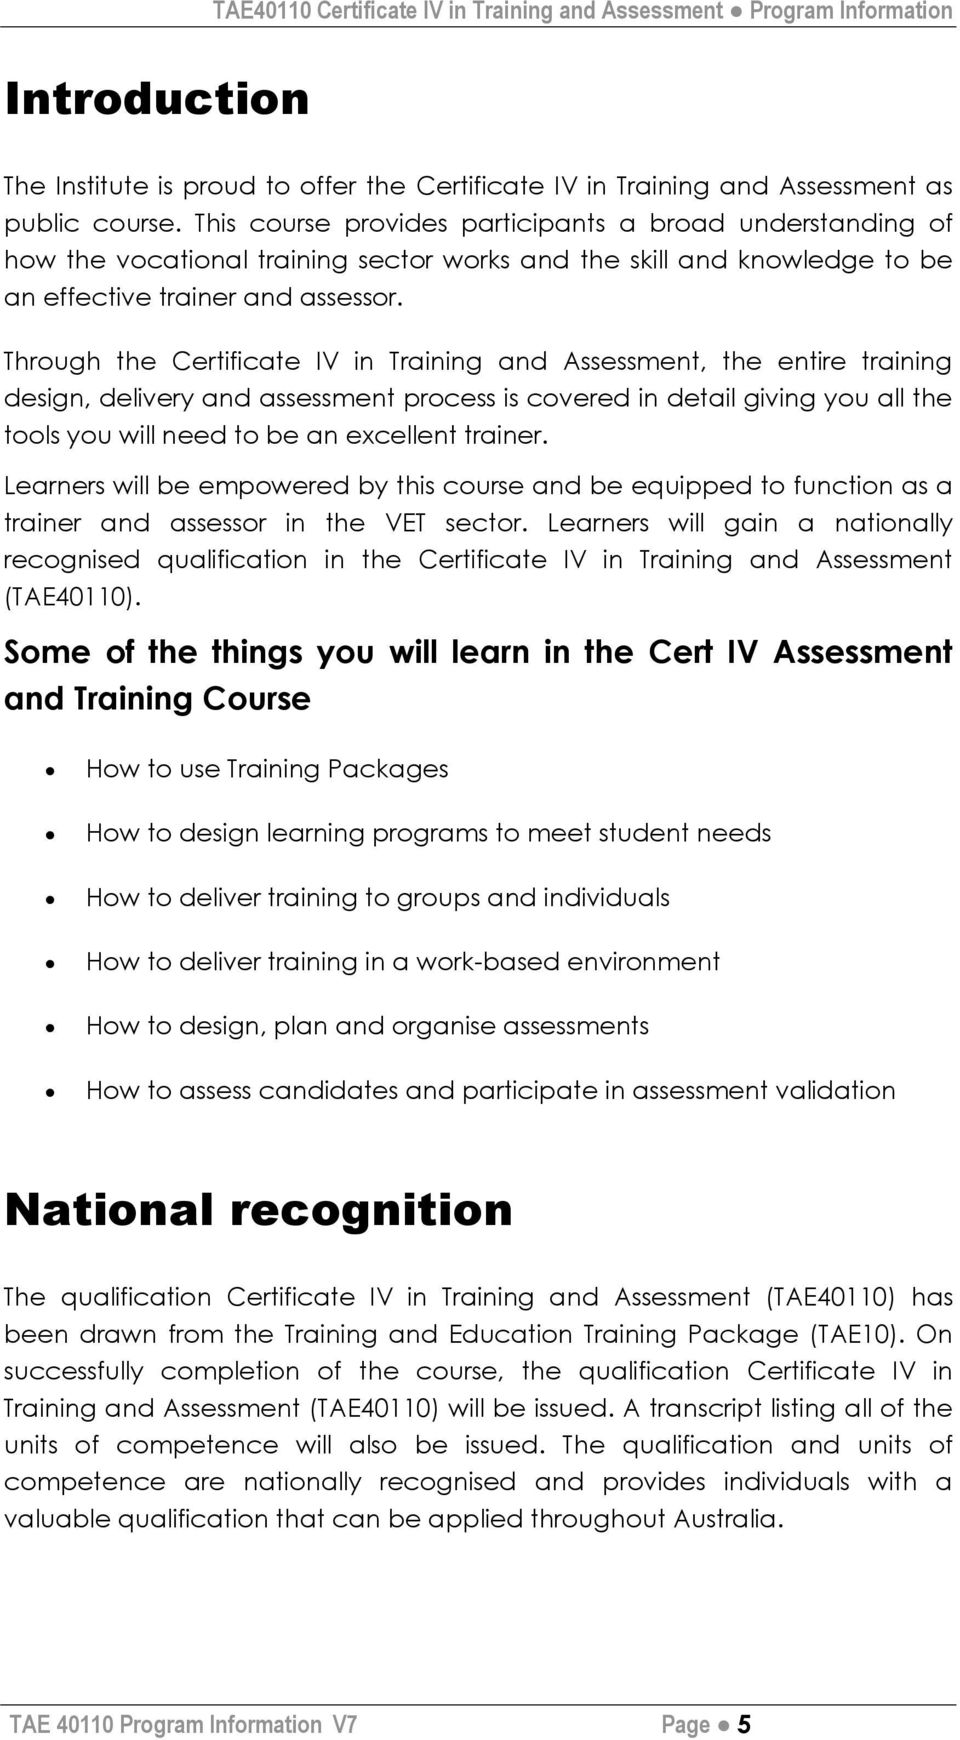 Through the Certificate IV in Training and Assessment, the entire training design, delivery and assessment process is covered in detail giving you all the tools you will need to be an excellent